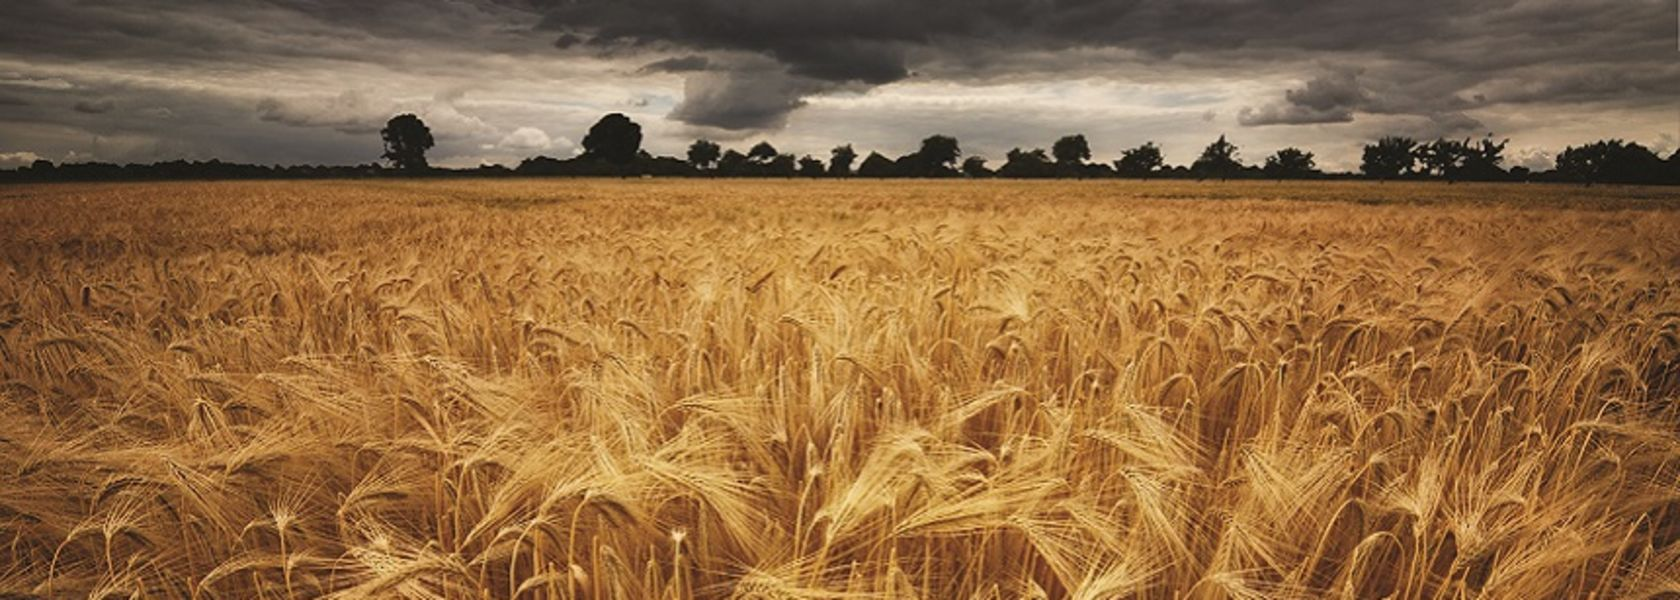 Wheat yield decline down to climate change: CSIRO